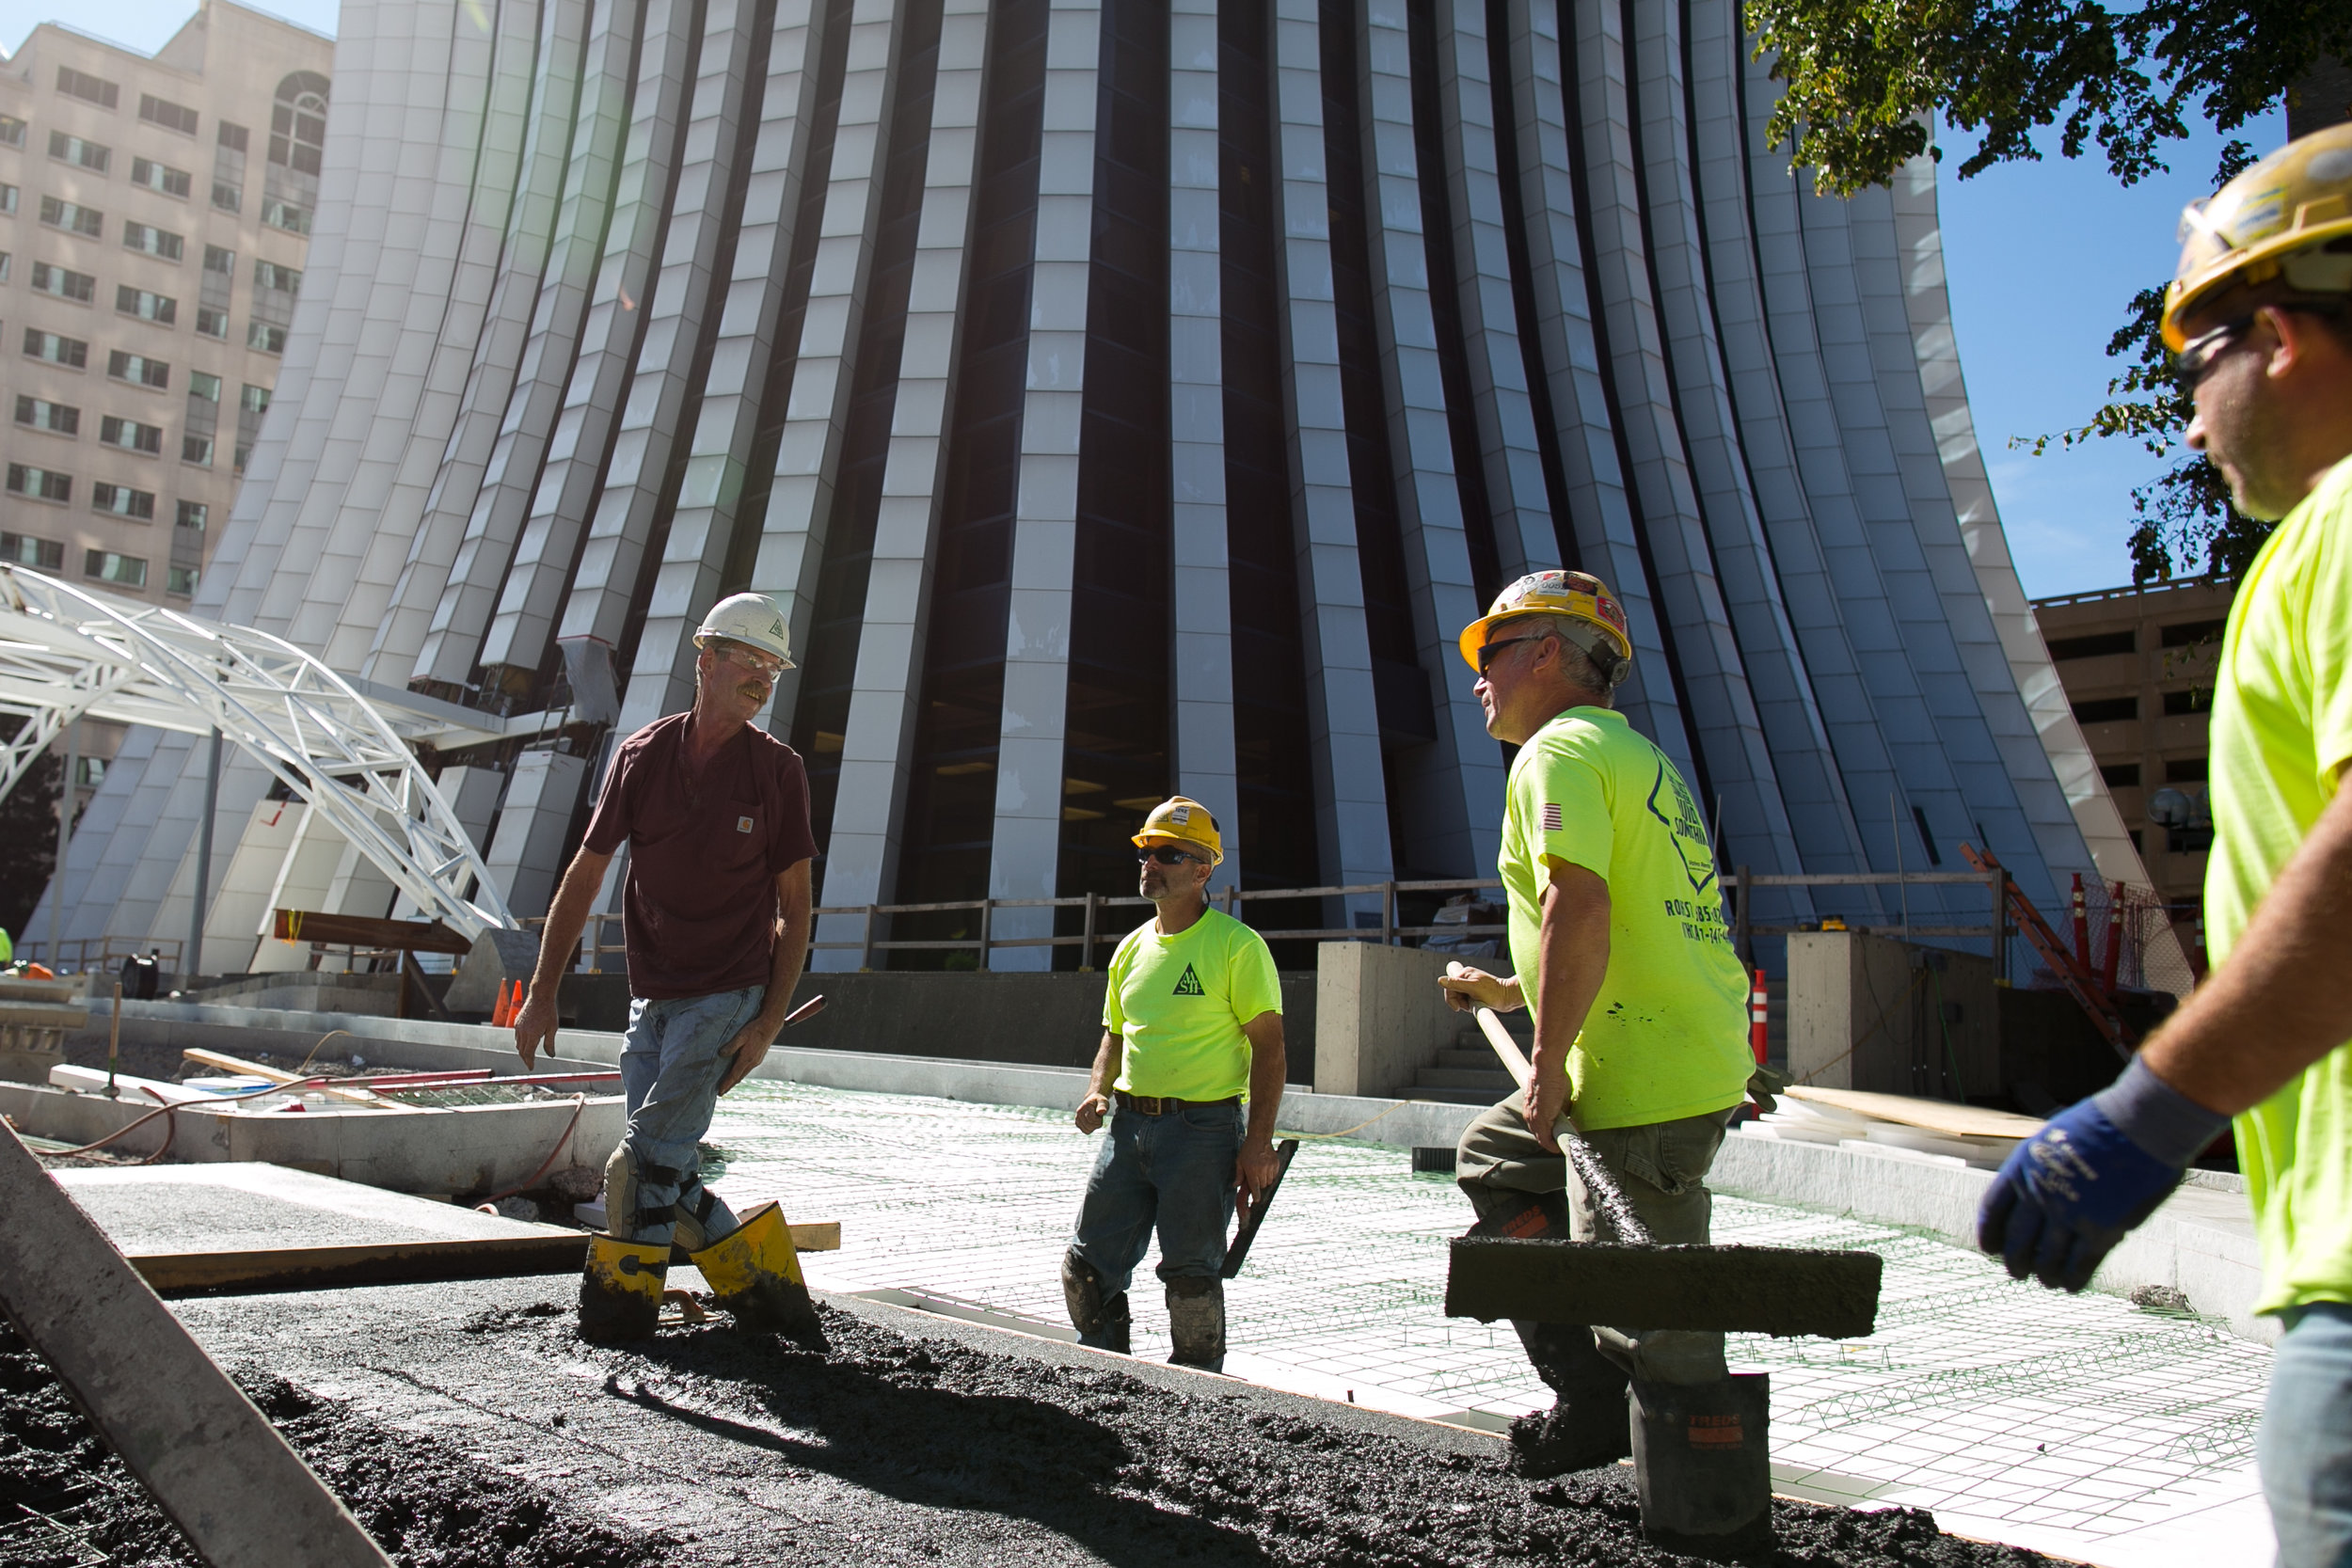 Workers pour a new driveway at The Metropolitan in Rochester, New York on Wednesday, October 5, 2016. The 26-story former Chase Tower is undergoing a $30-million renovation to modernize office space, and to add condominiums and apartments.